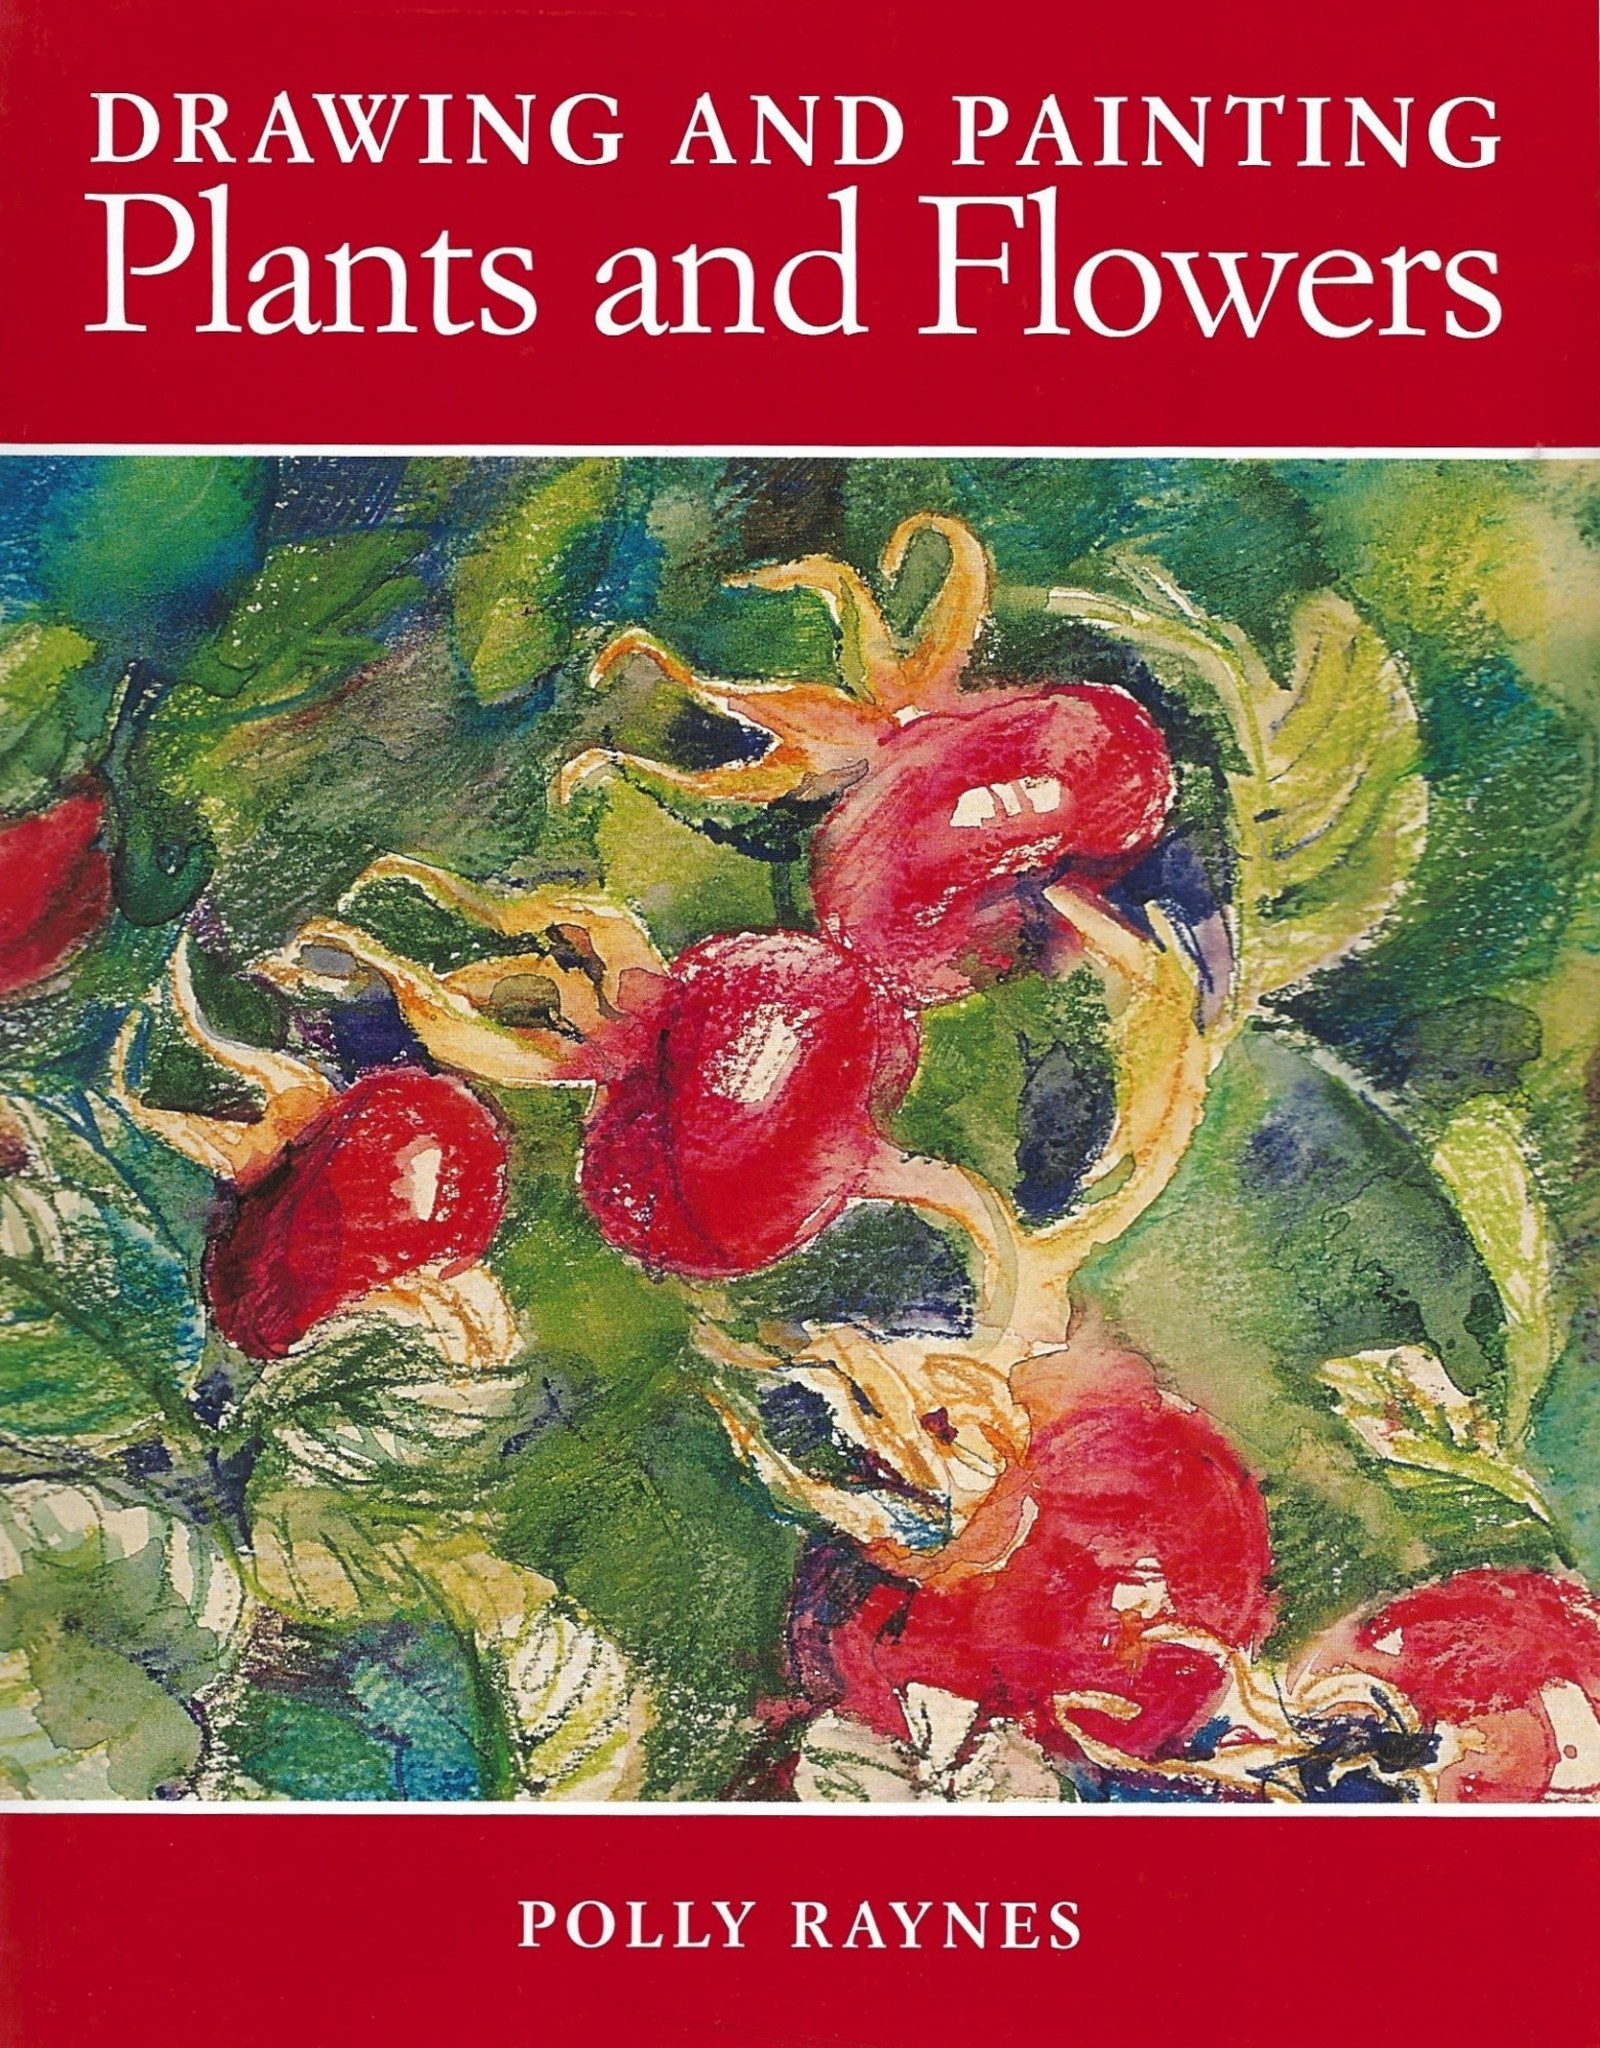 Drawing and Painting Plants and Flowers